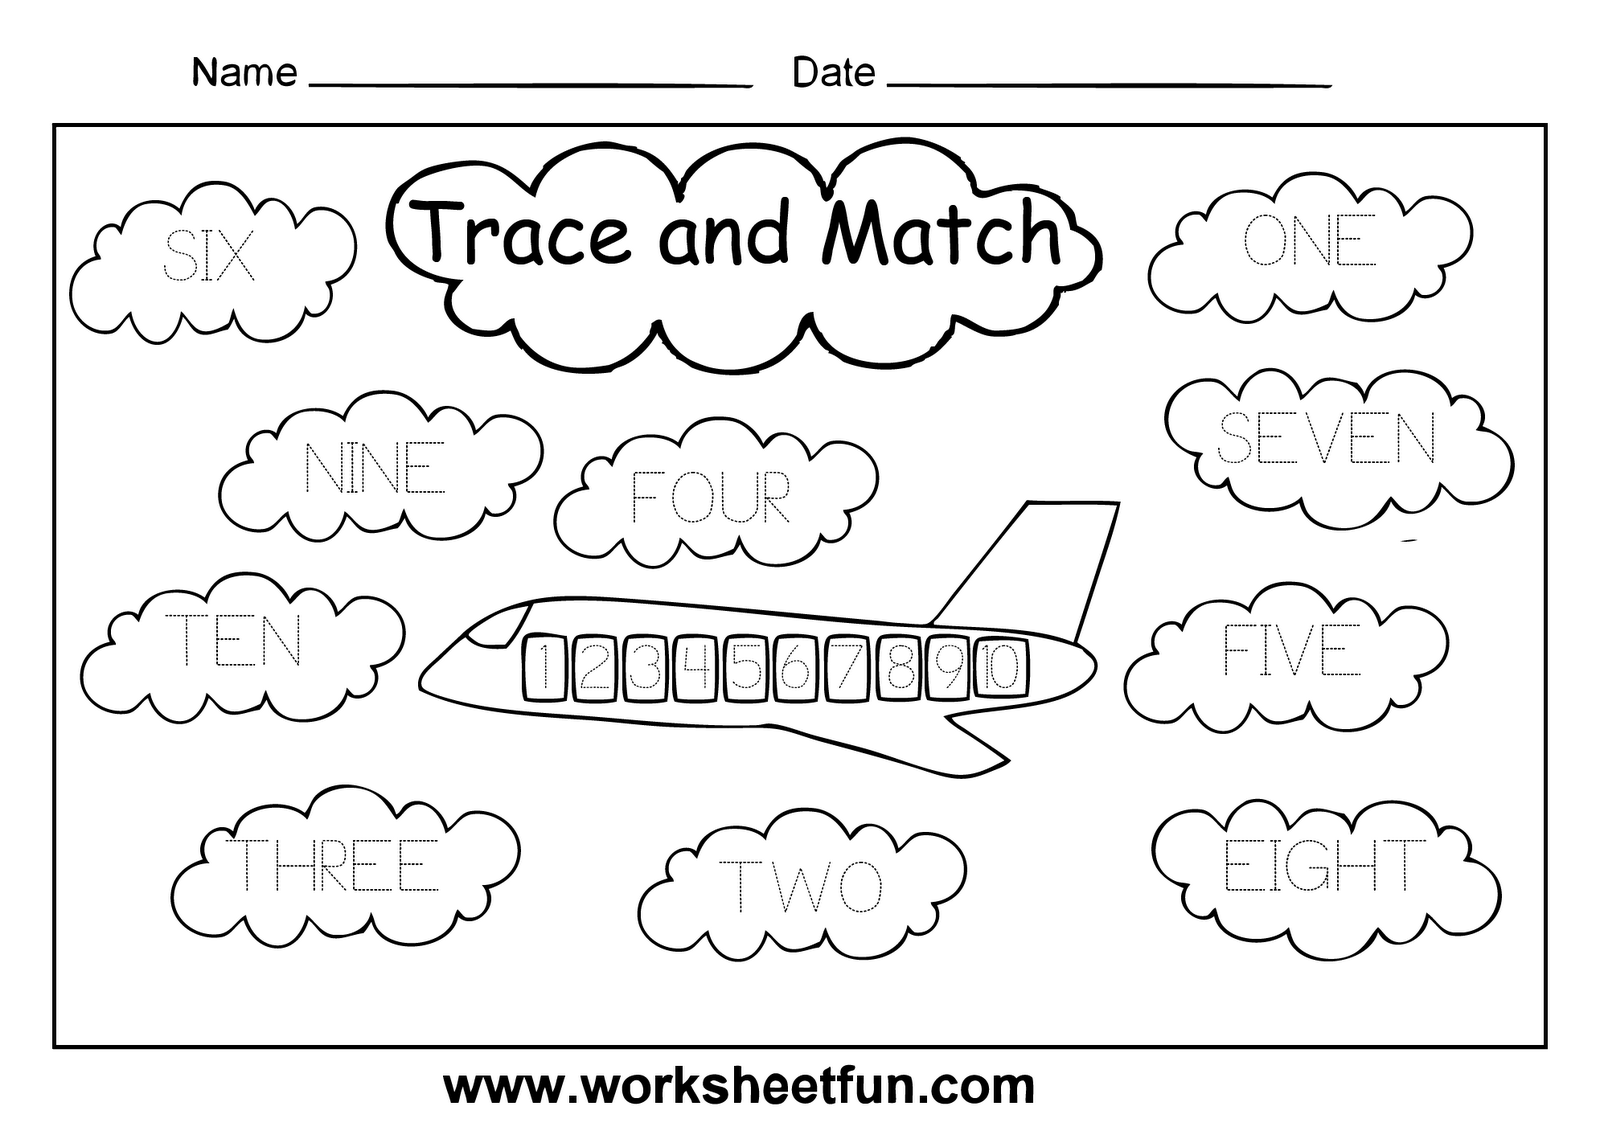 Weirdmailus  Outstanding Worksheet Numbers    Reocurent With Entrancing Hamlet Vocabulary Worksheet Besides Visual Fraction Worksheets Furthermore Activity Worksheets For Kindergarten With Delectable Context Clues Worksheets For Th Grade Also Vowel And Consonant Worksheets In Addition Shapes Worksheets For Toddlers And Measuring In Centimeters Worksheet As Well As Perfect Tense Verb Worksheets Additionally Mazes For Kindergarten Worksheets From Reocurentcom With Weirdmailus  Entrancing Worksheet Numbers    Reocurent With Delectable Hamlet Vocabulary Worksheet Besides Visual Fraction Worksheets Furthermore Activity Worksheets For Kindergarten And Outstanding Context Clues Worksheets For Th Grade Also Vowel And Consonant Worksheets In Addition Shapes Worksheets For Toddlers From Reocurentcom